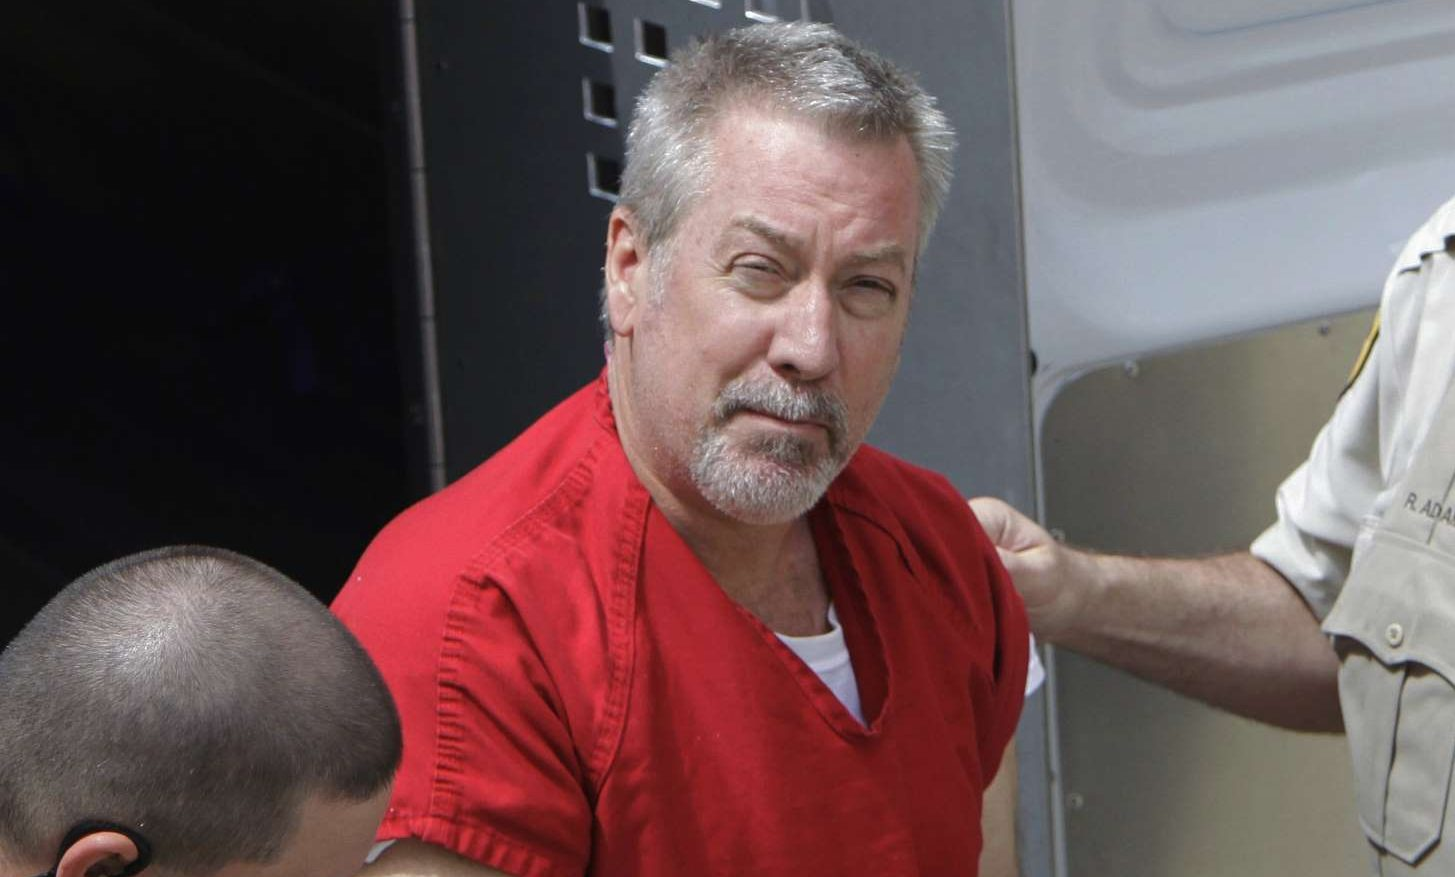 Drew Peterson Found Guilty of Trying to Have Prosecutor Killed